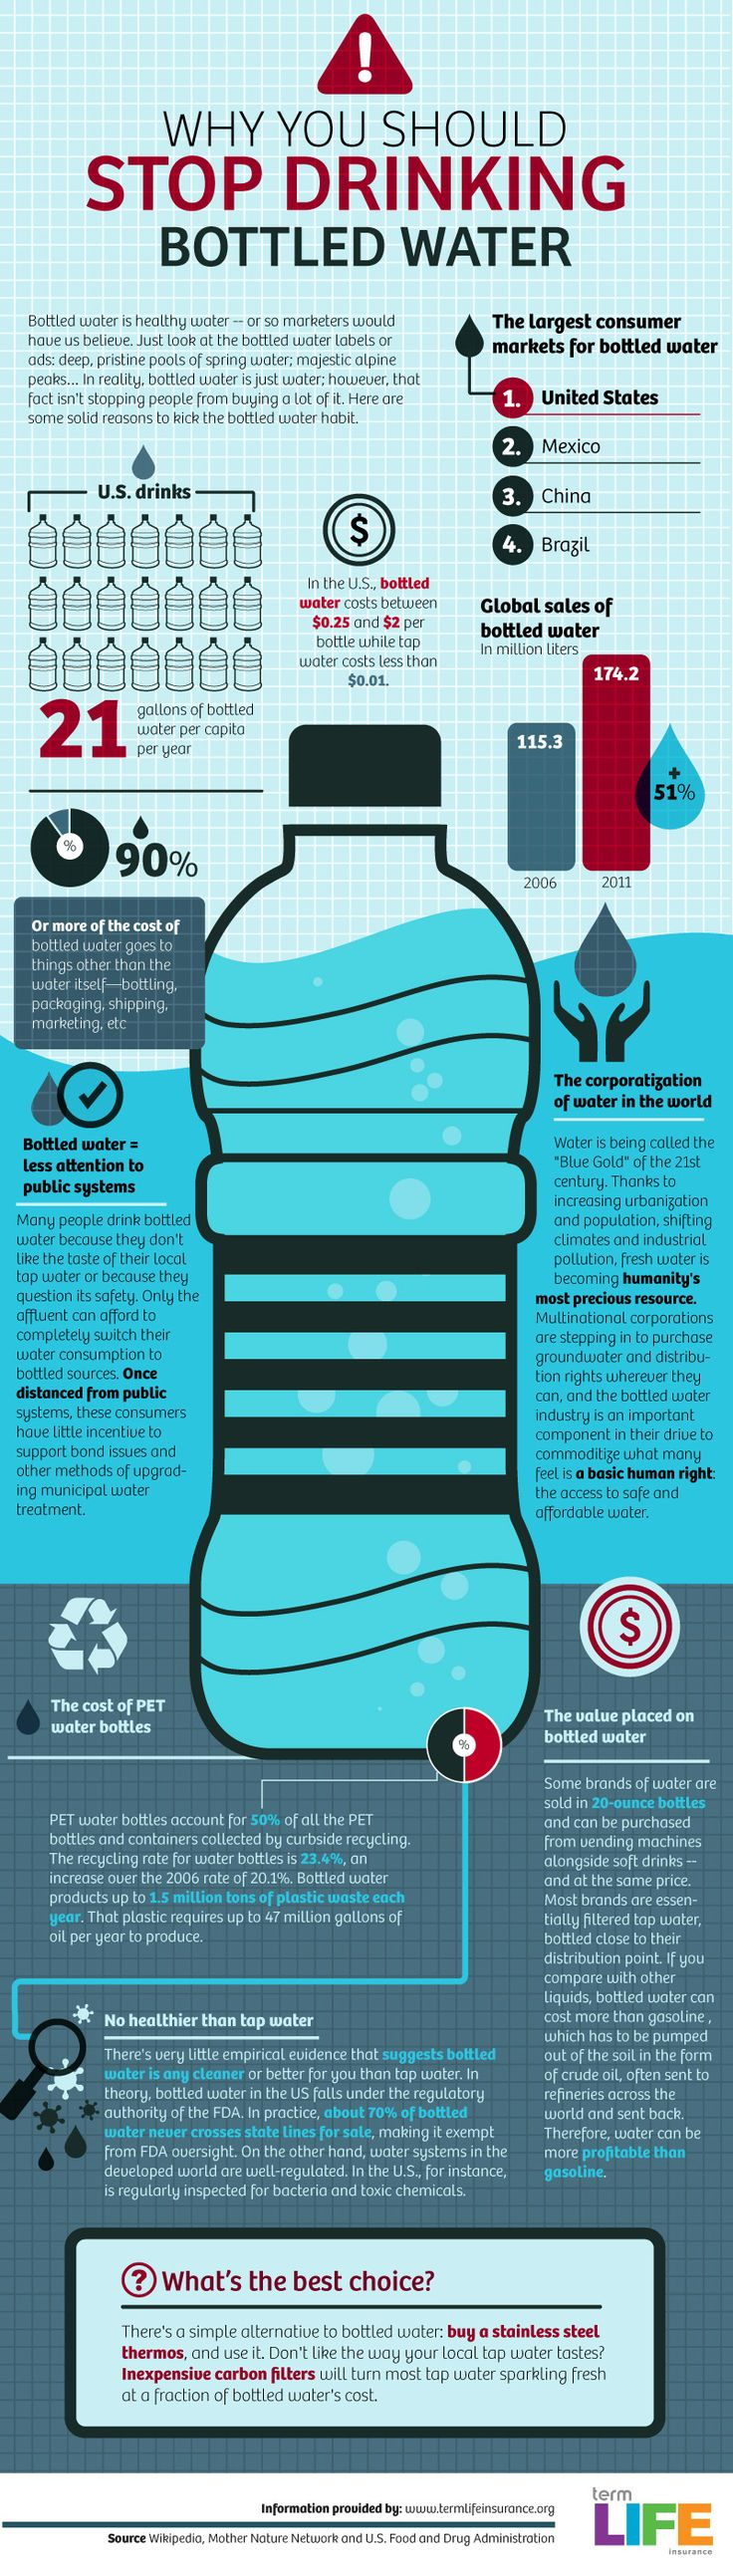 instantShift - Bottled Water  Started using a reusable water bottle in college and i haven't looked back since.